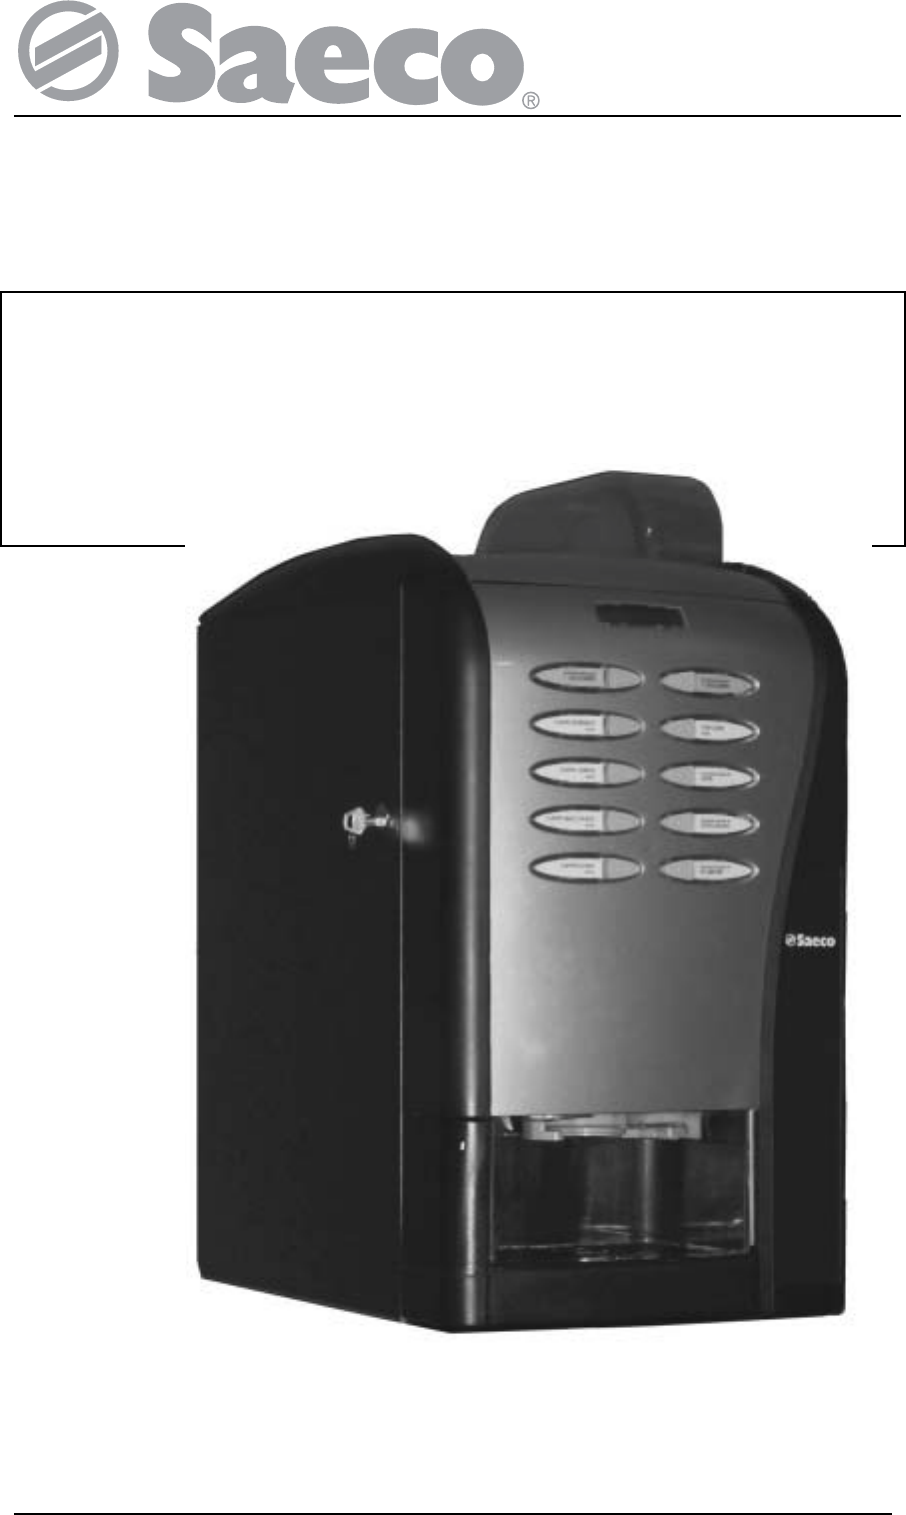 Saeco Coffee Maker Owner S Manual : Saeco Coffee Makers Coffee Grinder SG200E User Guide ManualsOnline.com